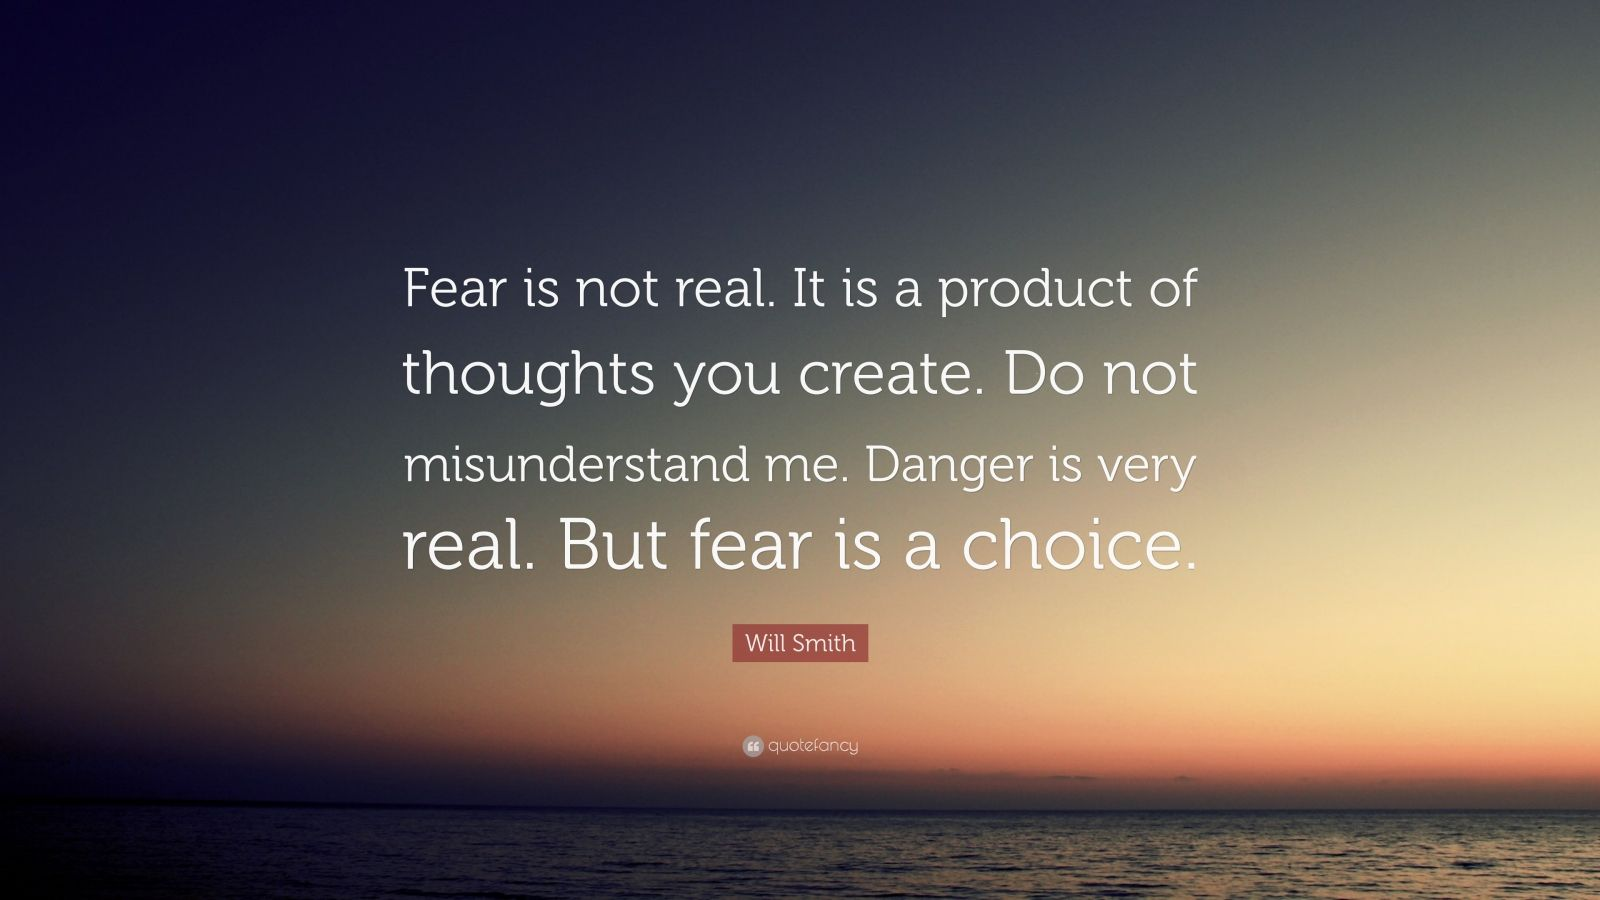 Martin Luther King Jr Quotes Wallpaper Will Smith Quote Fear Is Not Real It Is A Product Of